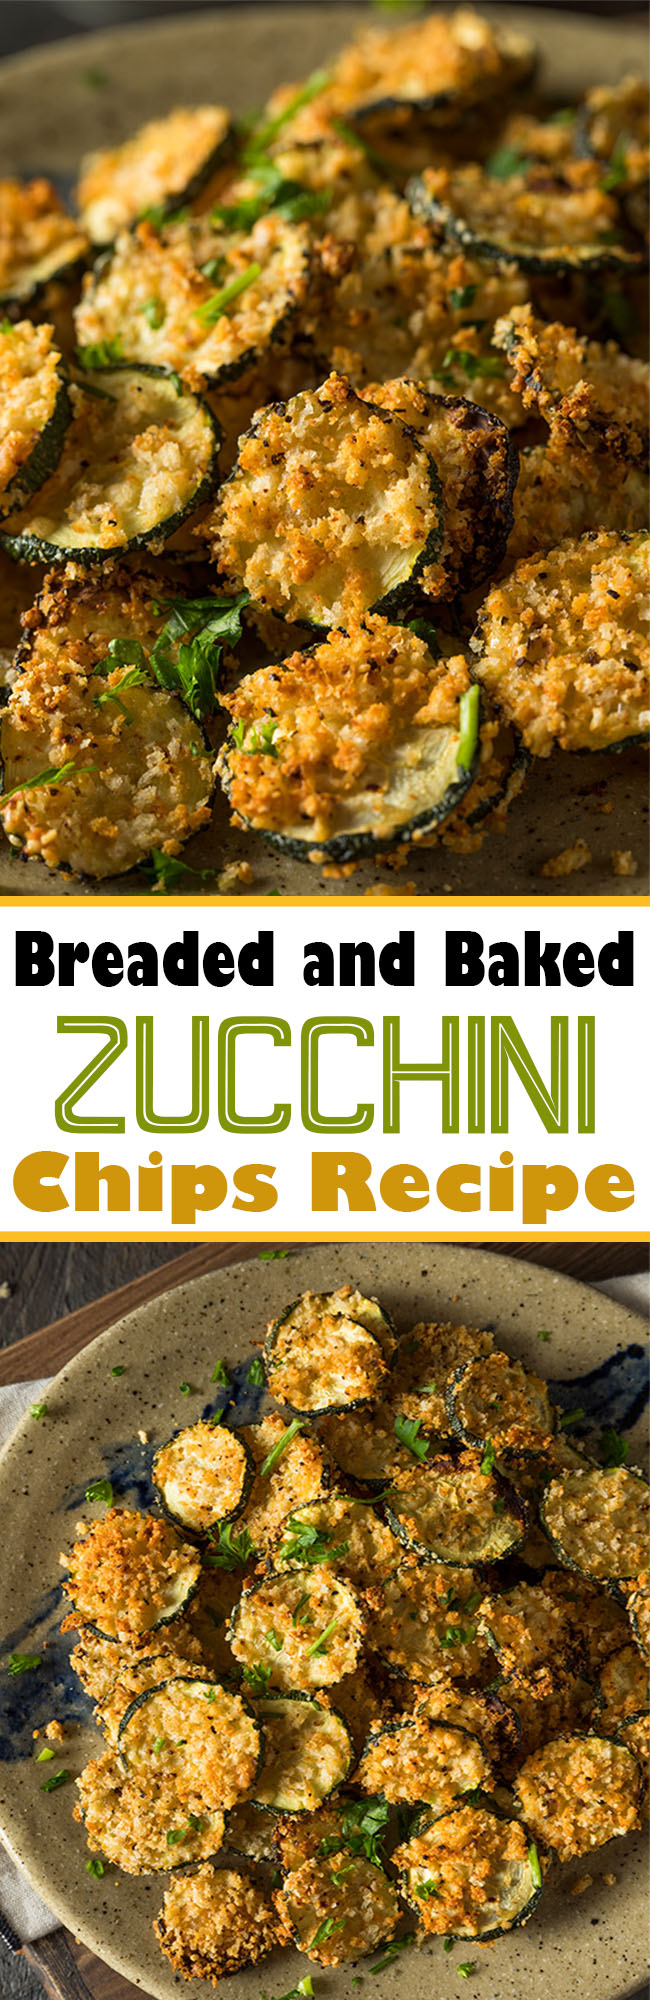 Breaded and Baked #Zucchini Chips Recipe